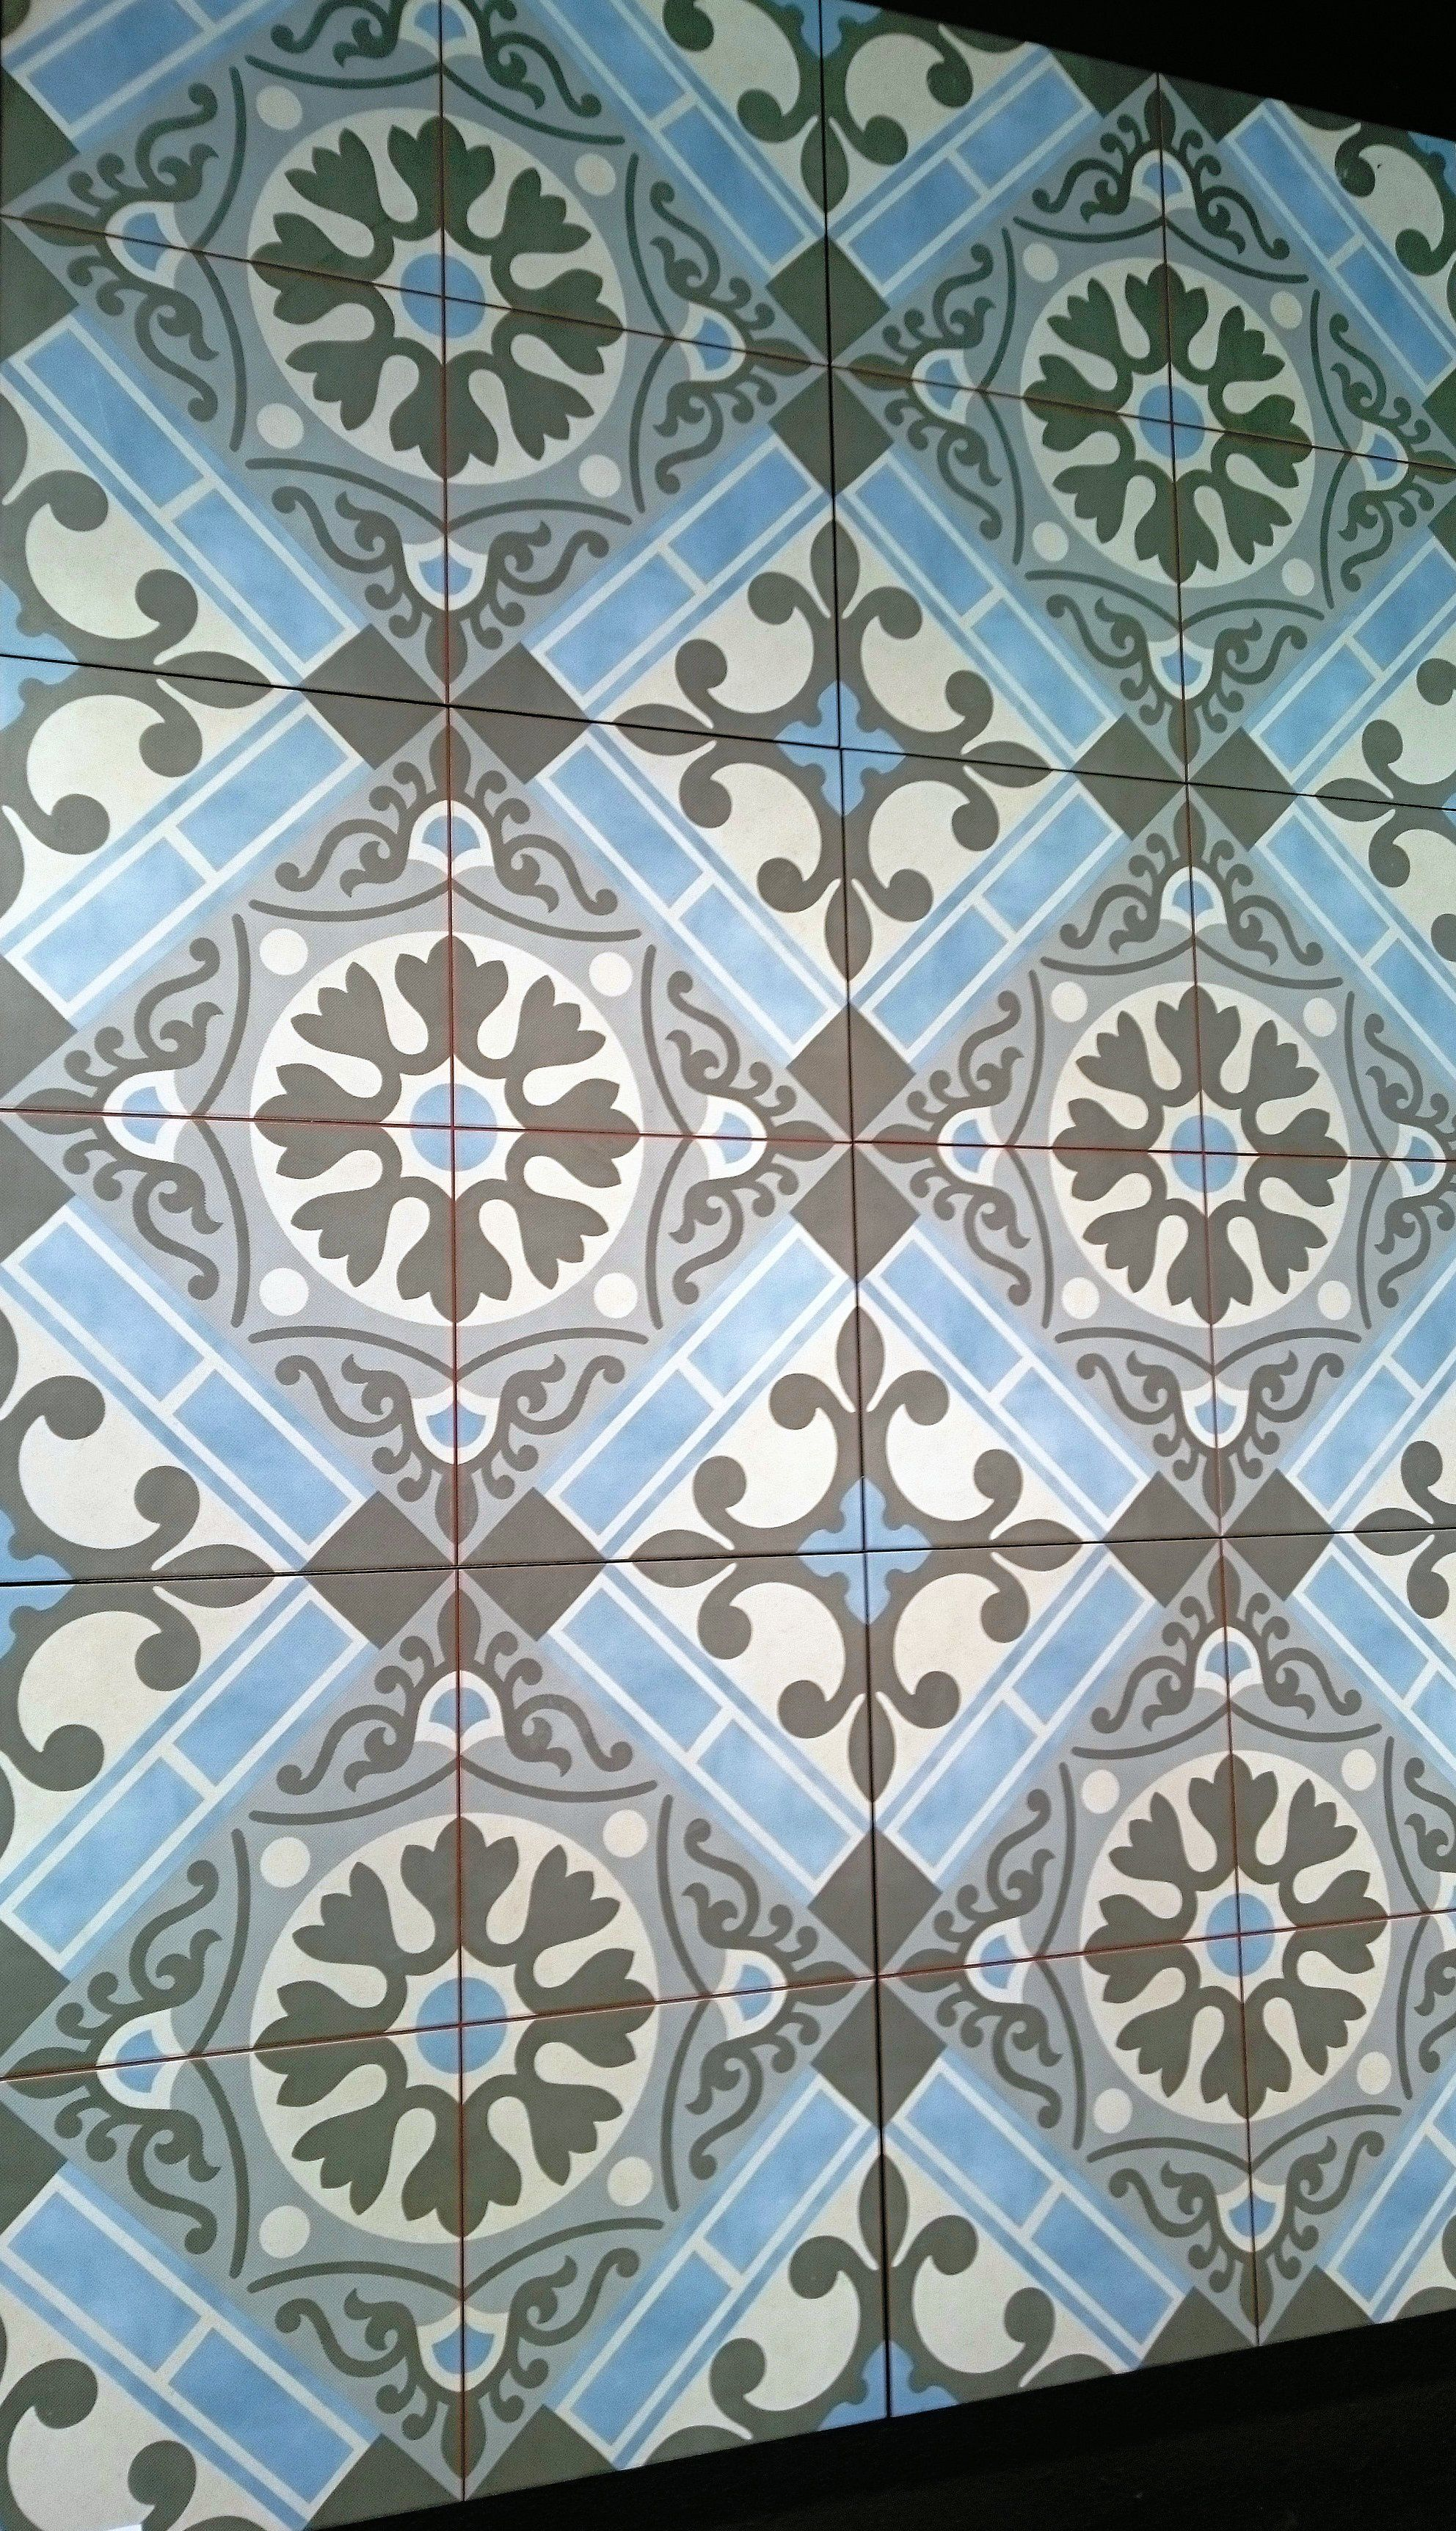 Spanish vintage tiles from kalafrana ceramics sydney patterned replica encaustic tiles from spain these hard wearing ceramic tiles require no sealing or maintenance doublecrazyfo Gallery